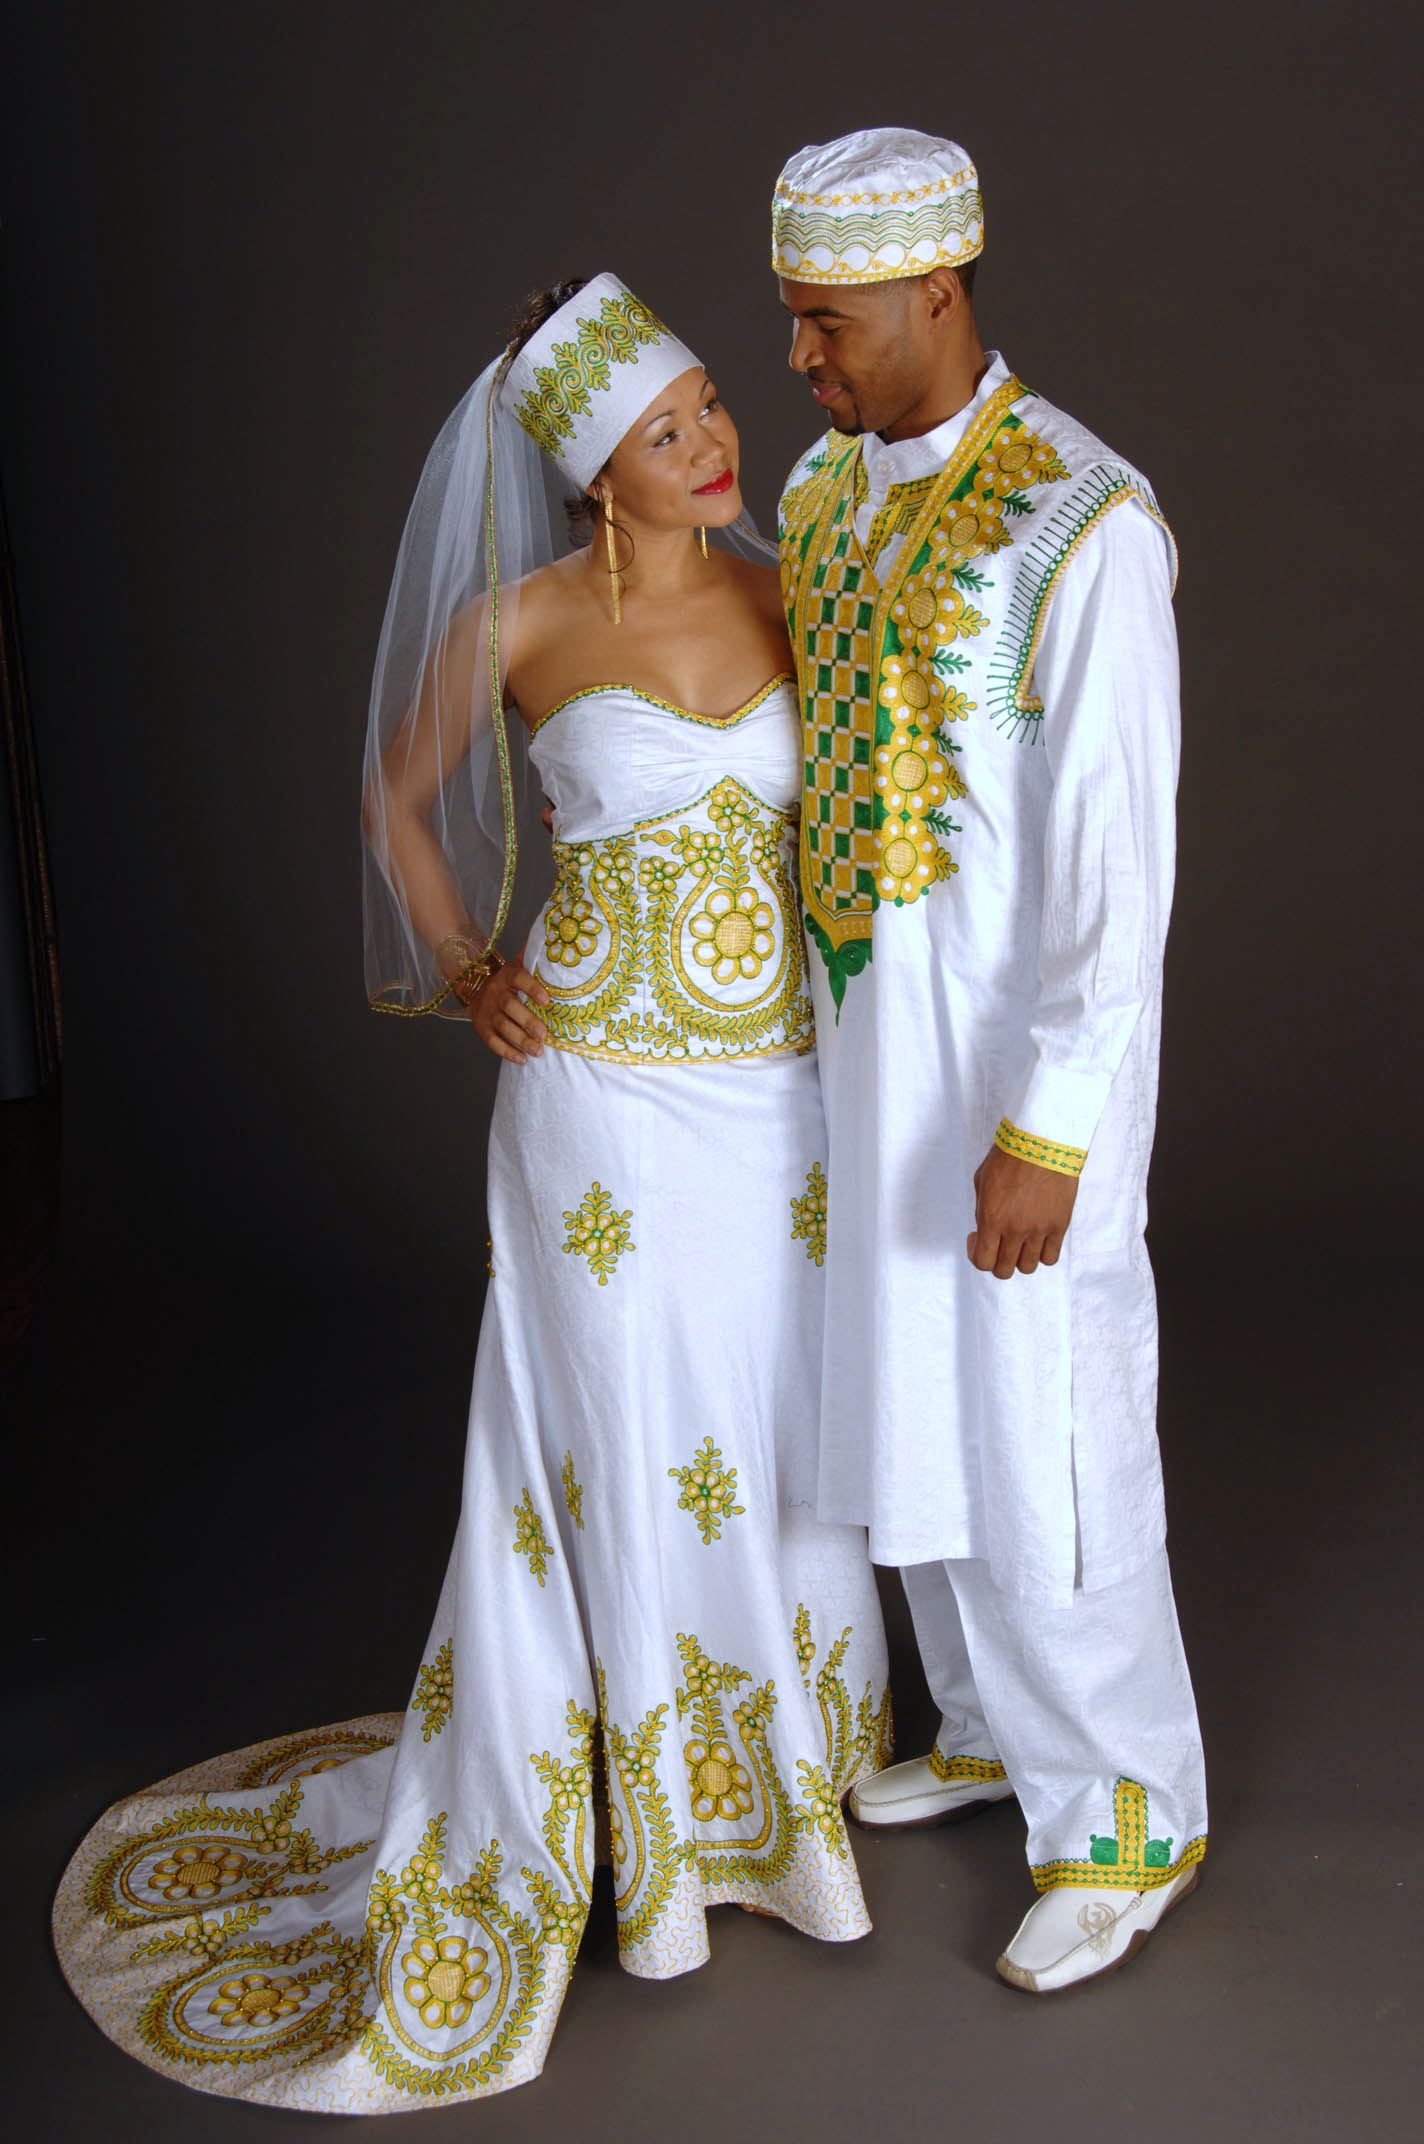 South african traditional outfits for weddings | Fashion ...  |African Wedding Dresses